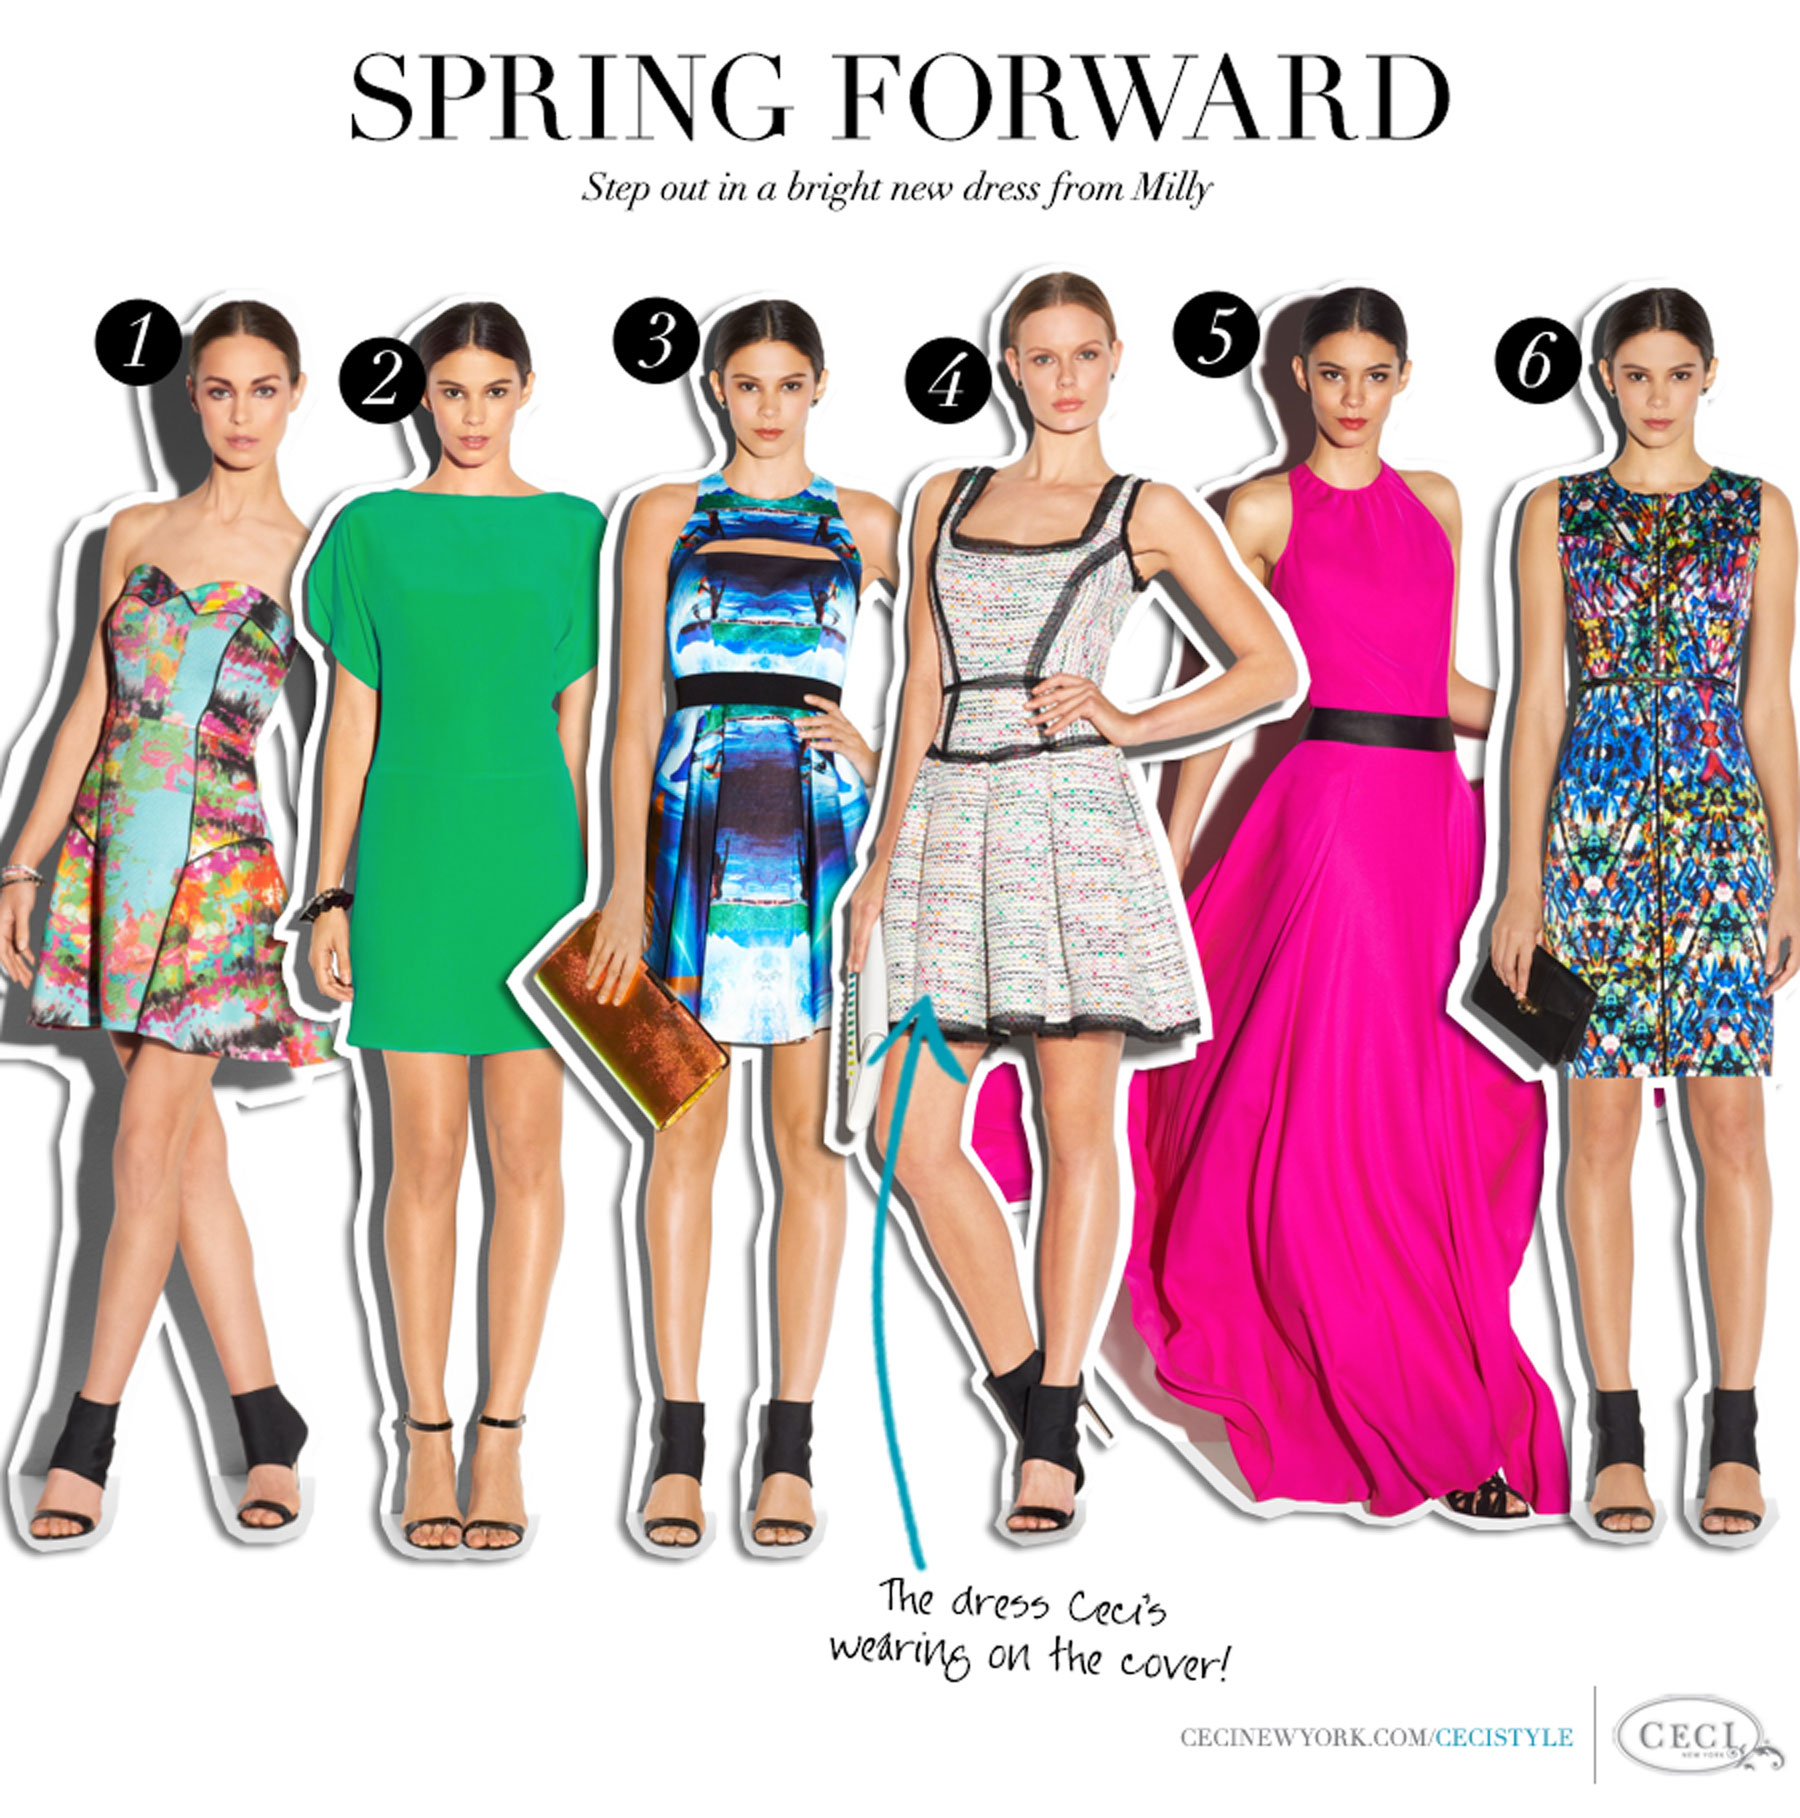 Spring Forward - Step out in a bright new dress from Milly